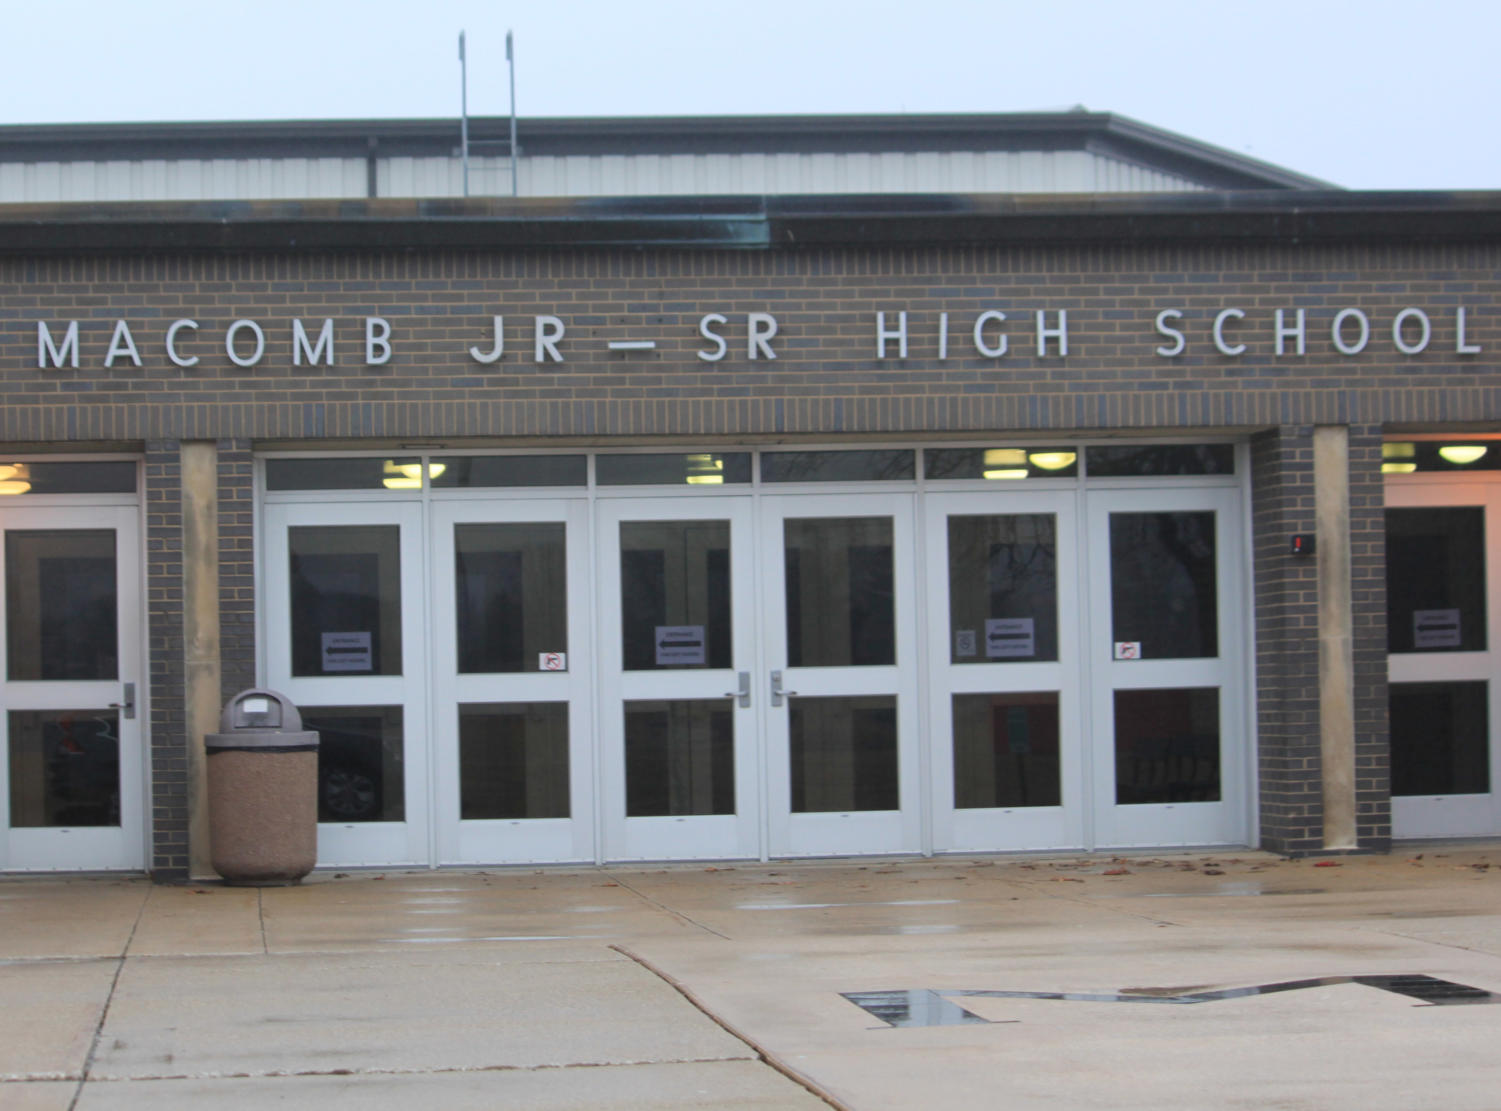 Macomb Junior-Senior High School, where two former students claim the were sexually assaulted by a former male student, and where they claim administrators ignored the incidents in a lawsuit filed Feb. 16.